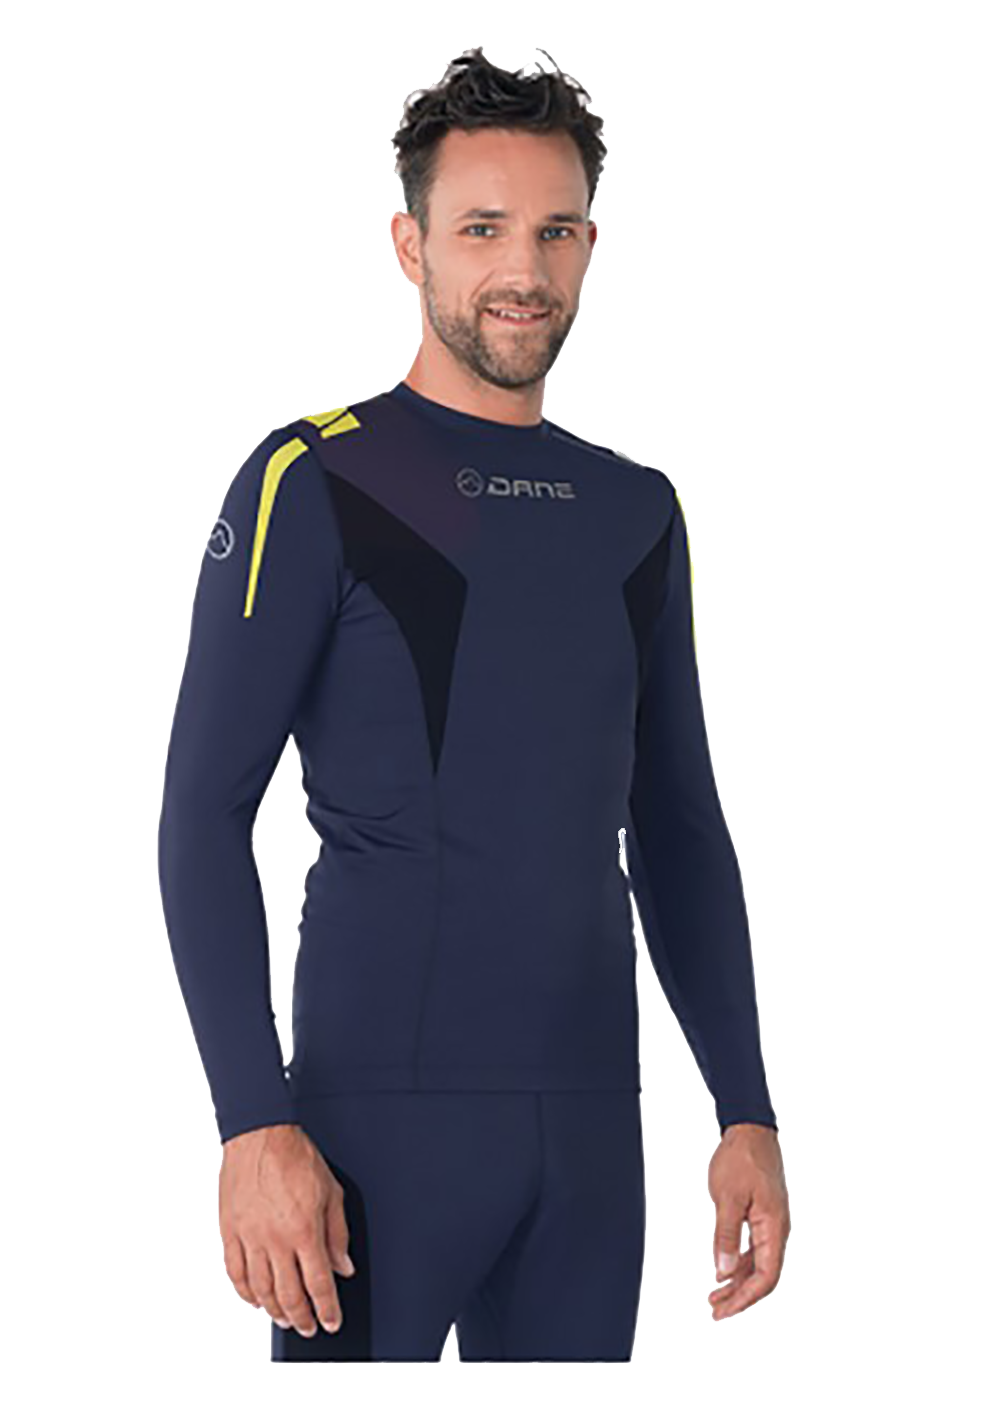 DANE 4-Season Baselayer Top - Dane Motorcycle Clothing